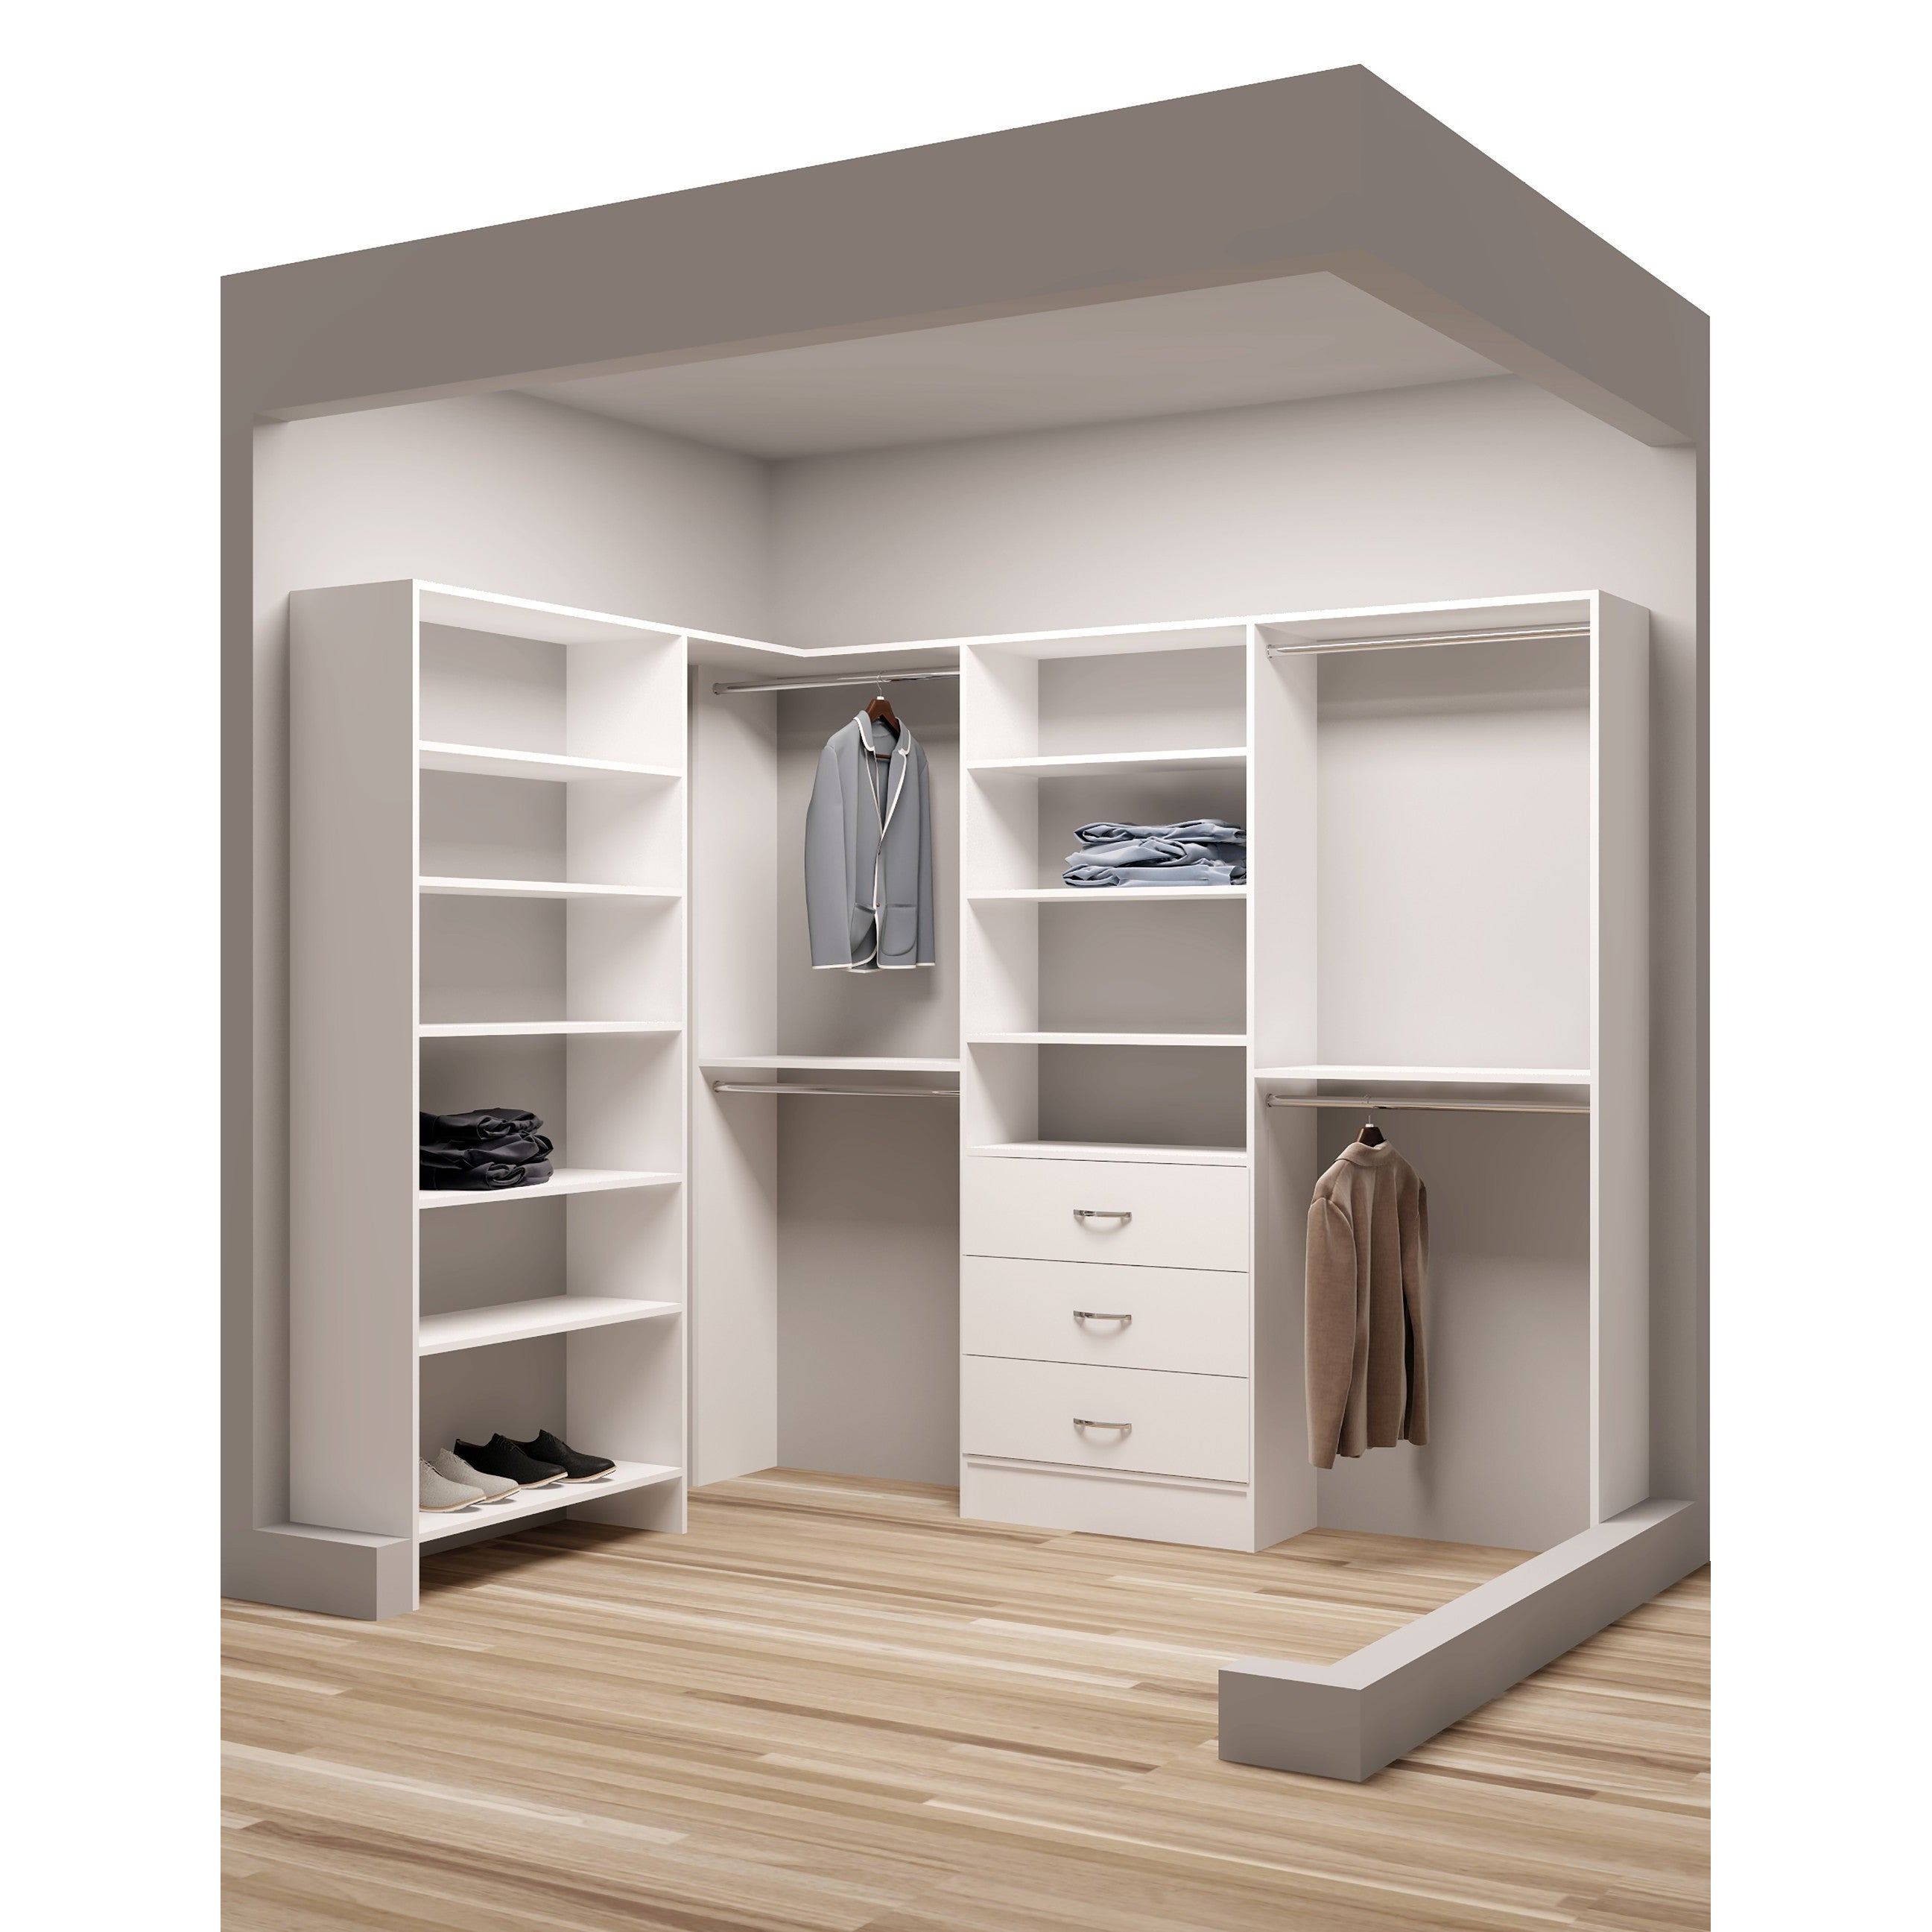 Tidysquares White Wood 67 X 93 Walk In Closet System